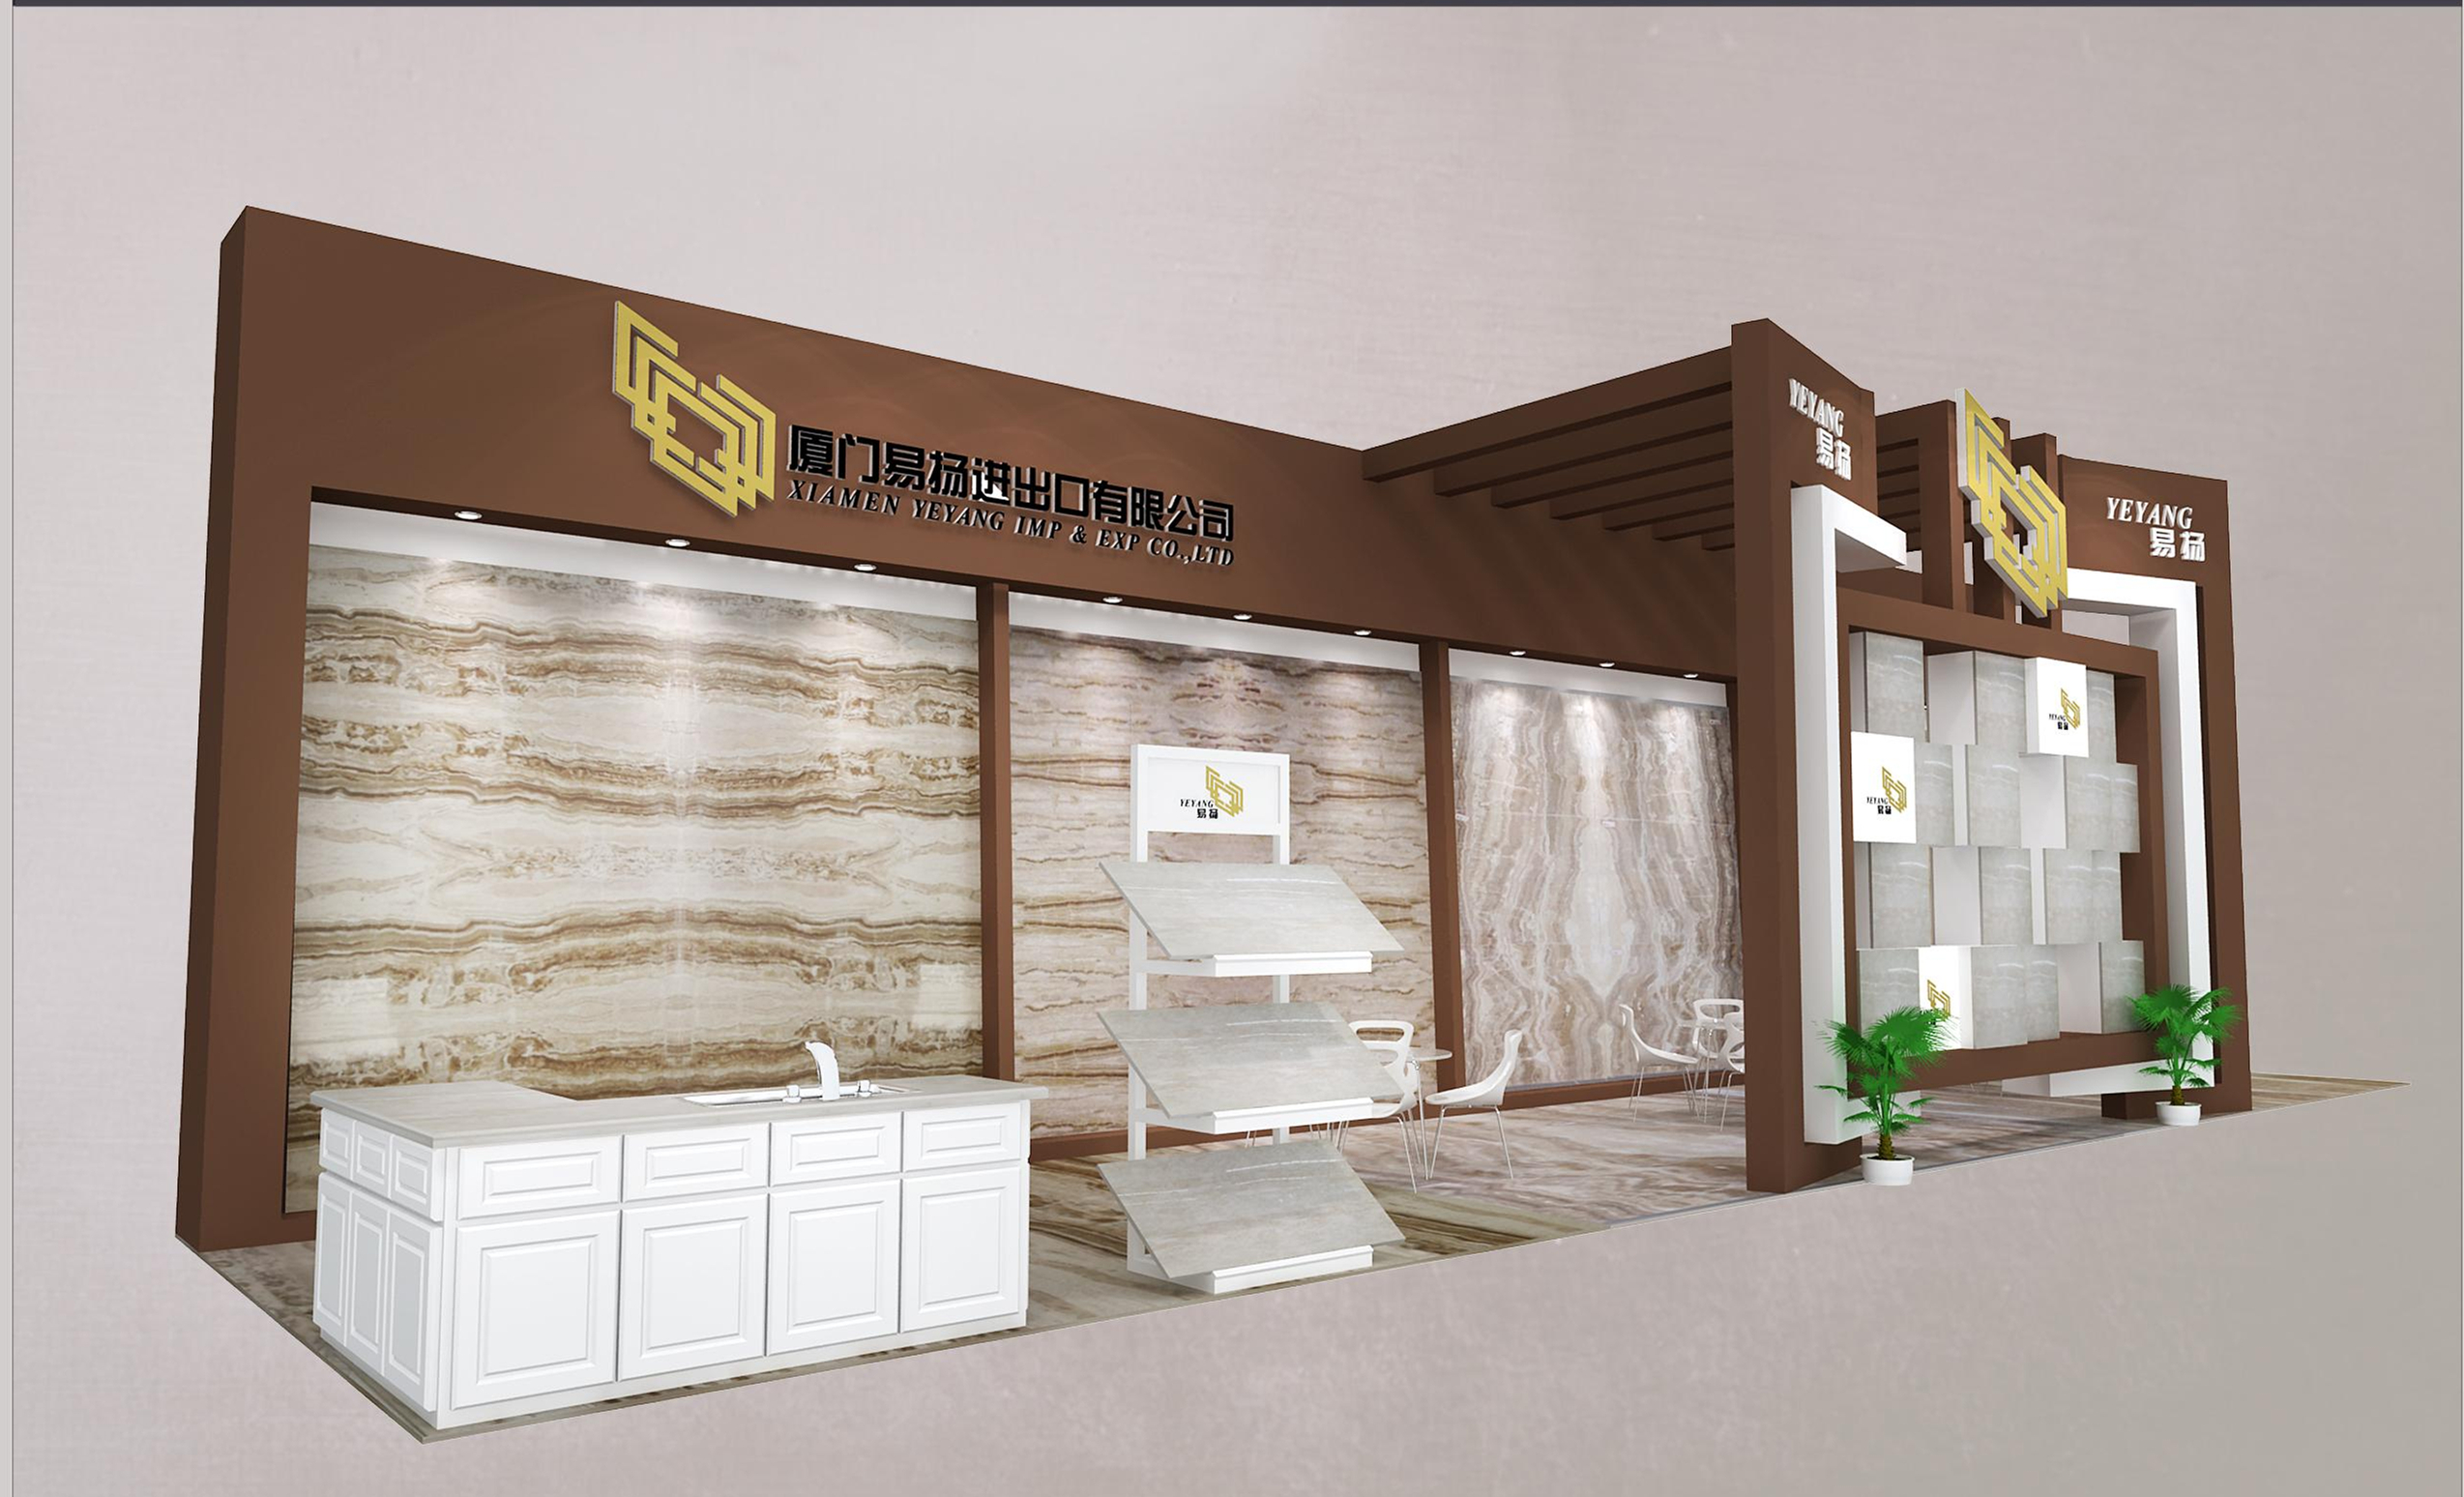 Granite Slabs For Photo Booth : Yeyang stone fair booth b of xiamen in